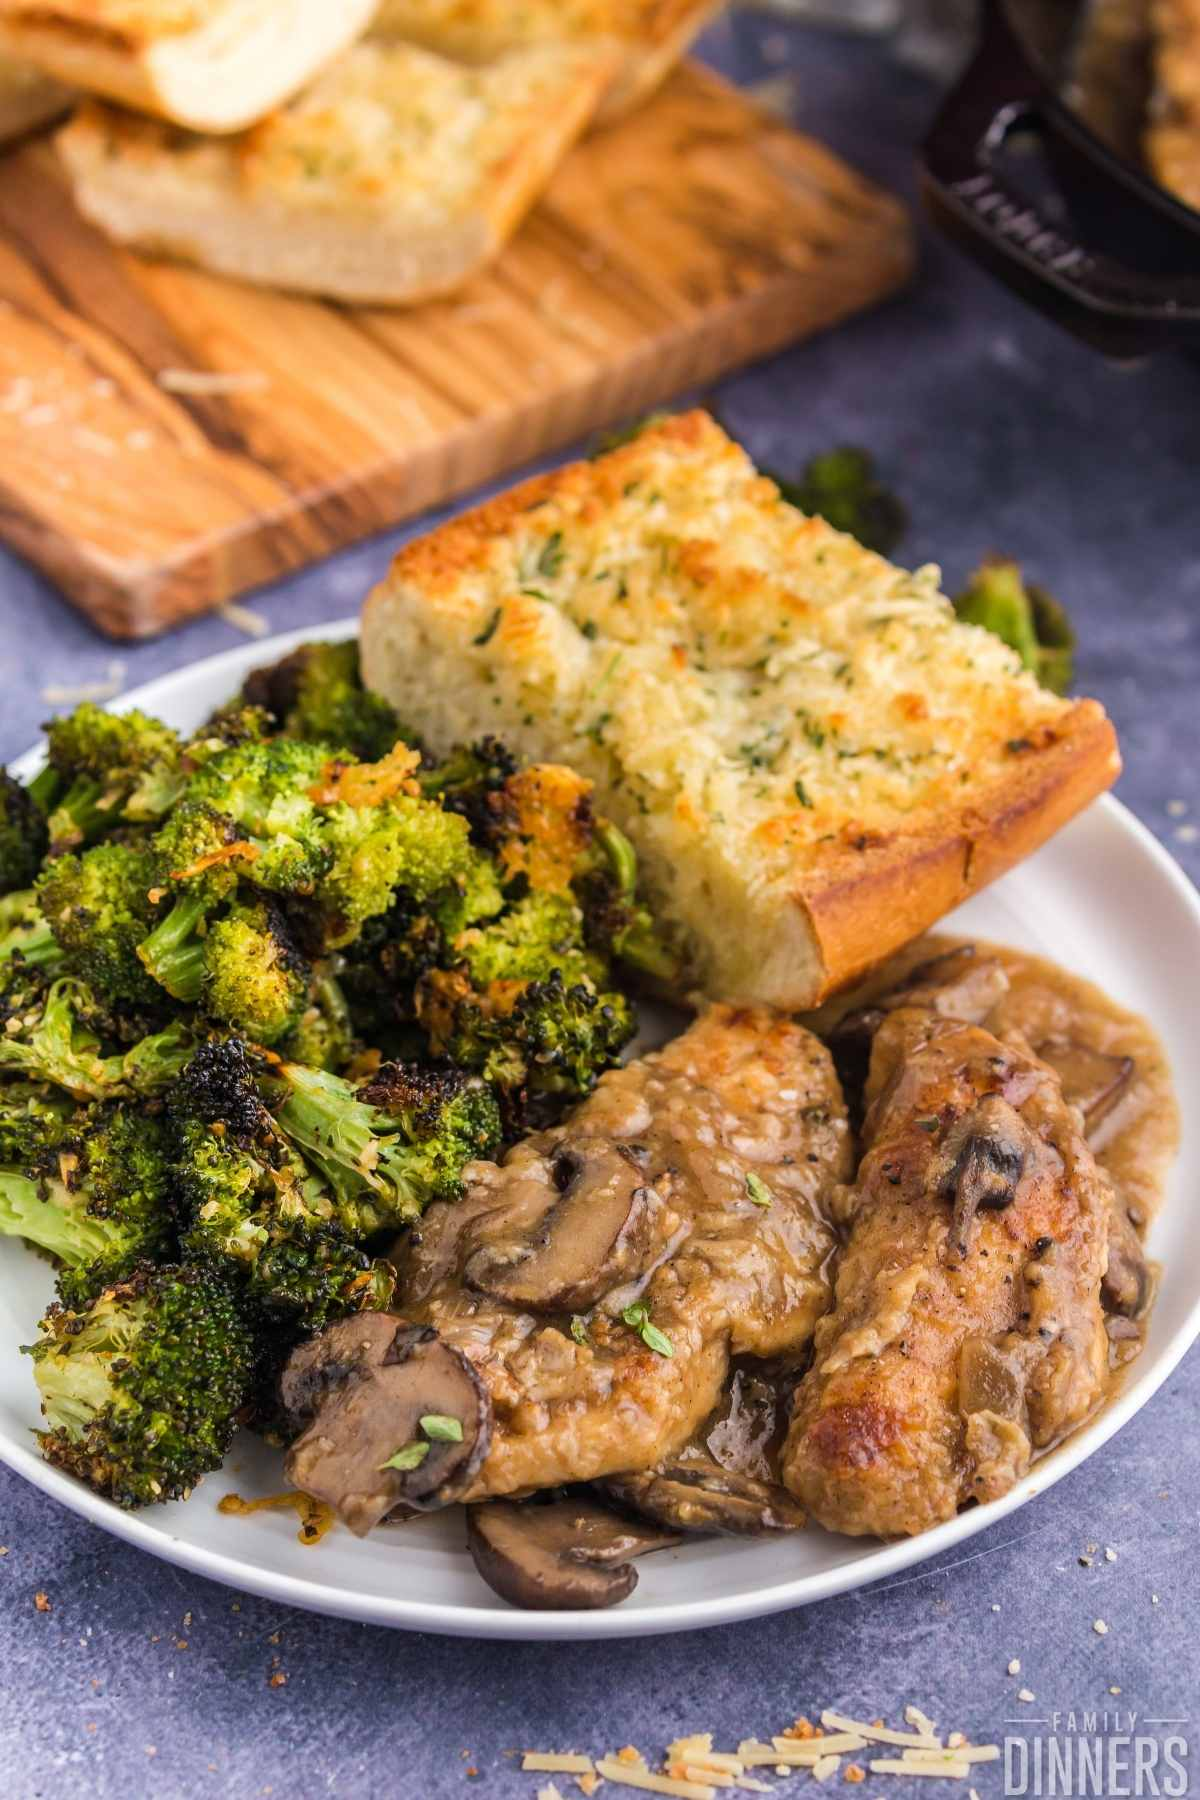 white round plate full of chicken and mushrooms, roasted broccoli and parmesan french bread